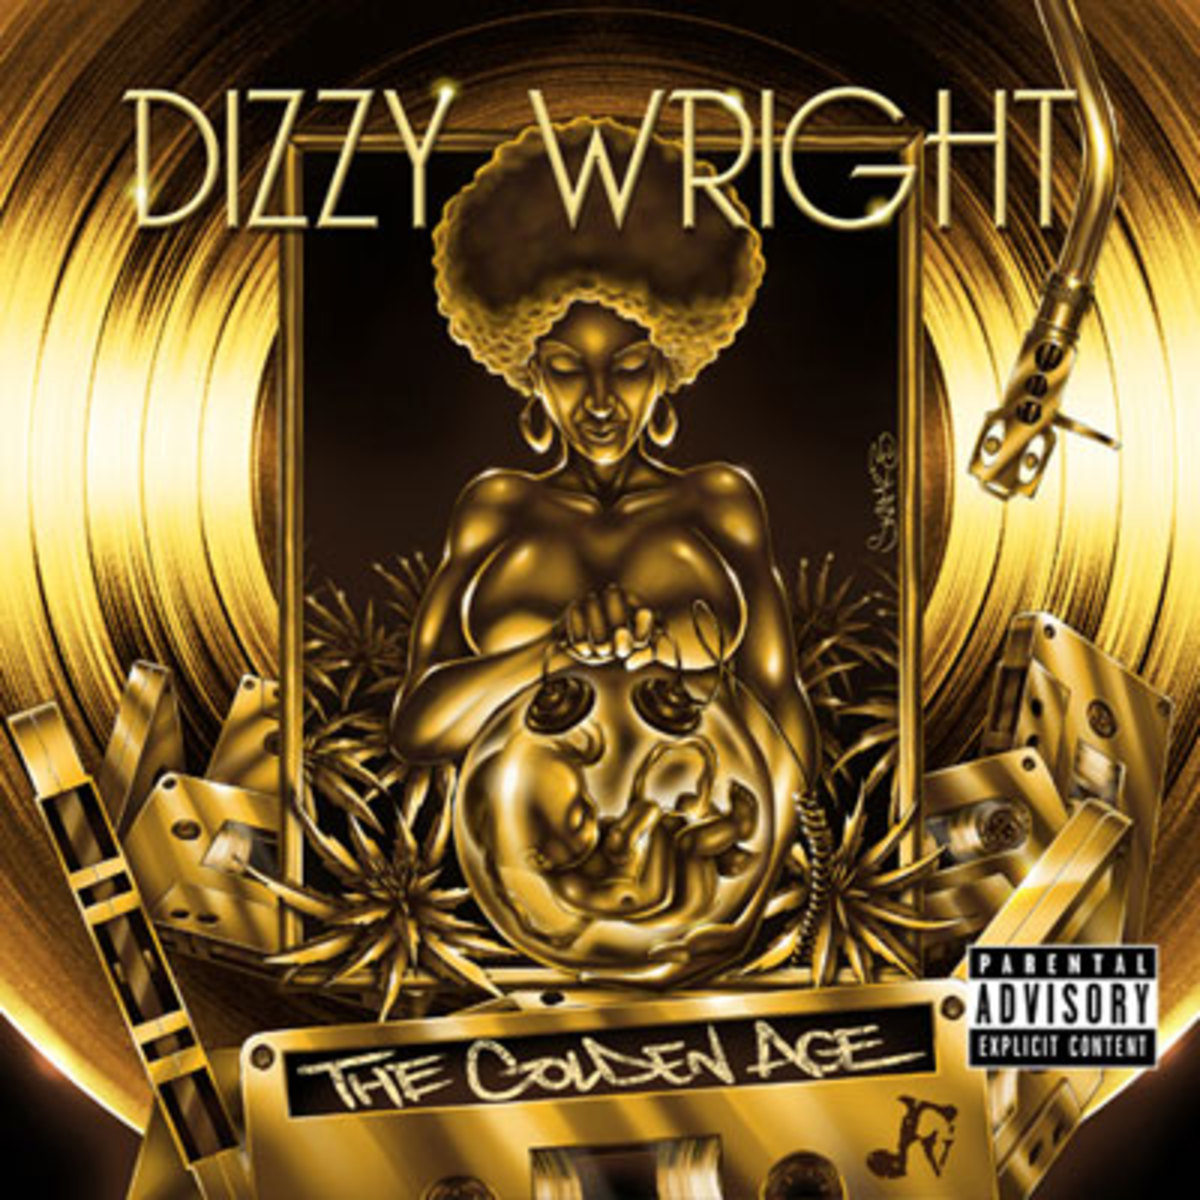 dizzywright-thegoldenage.jpg